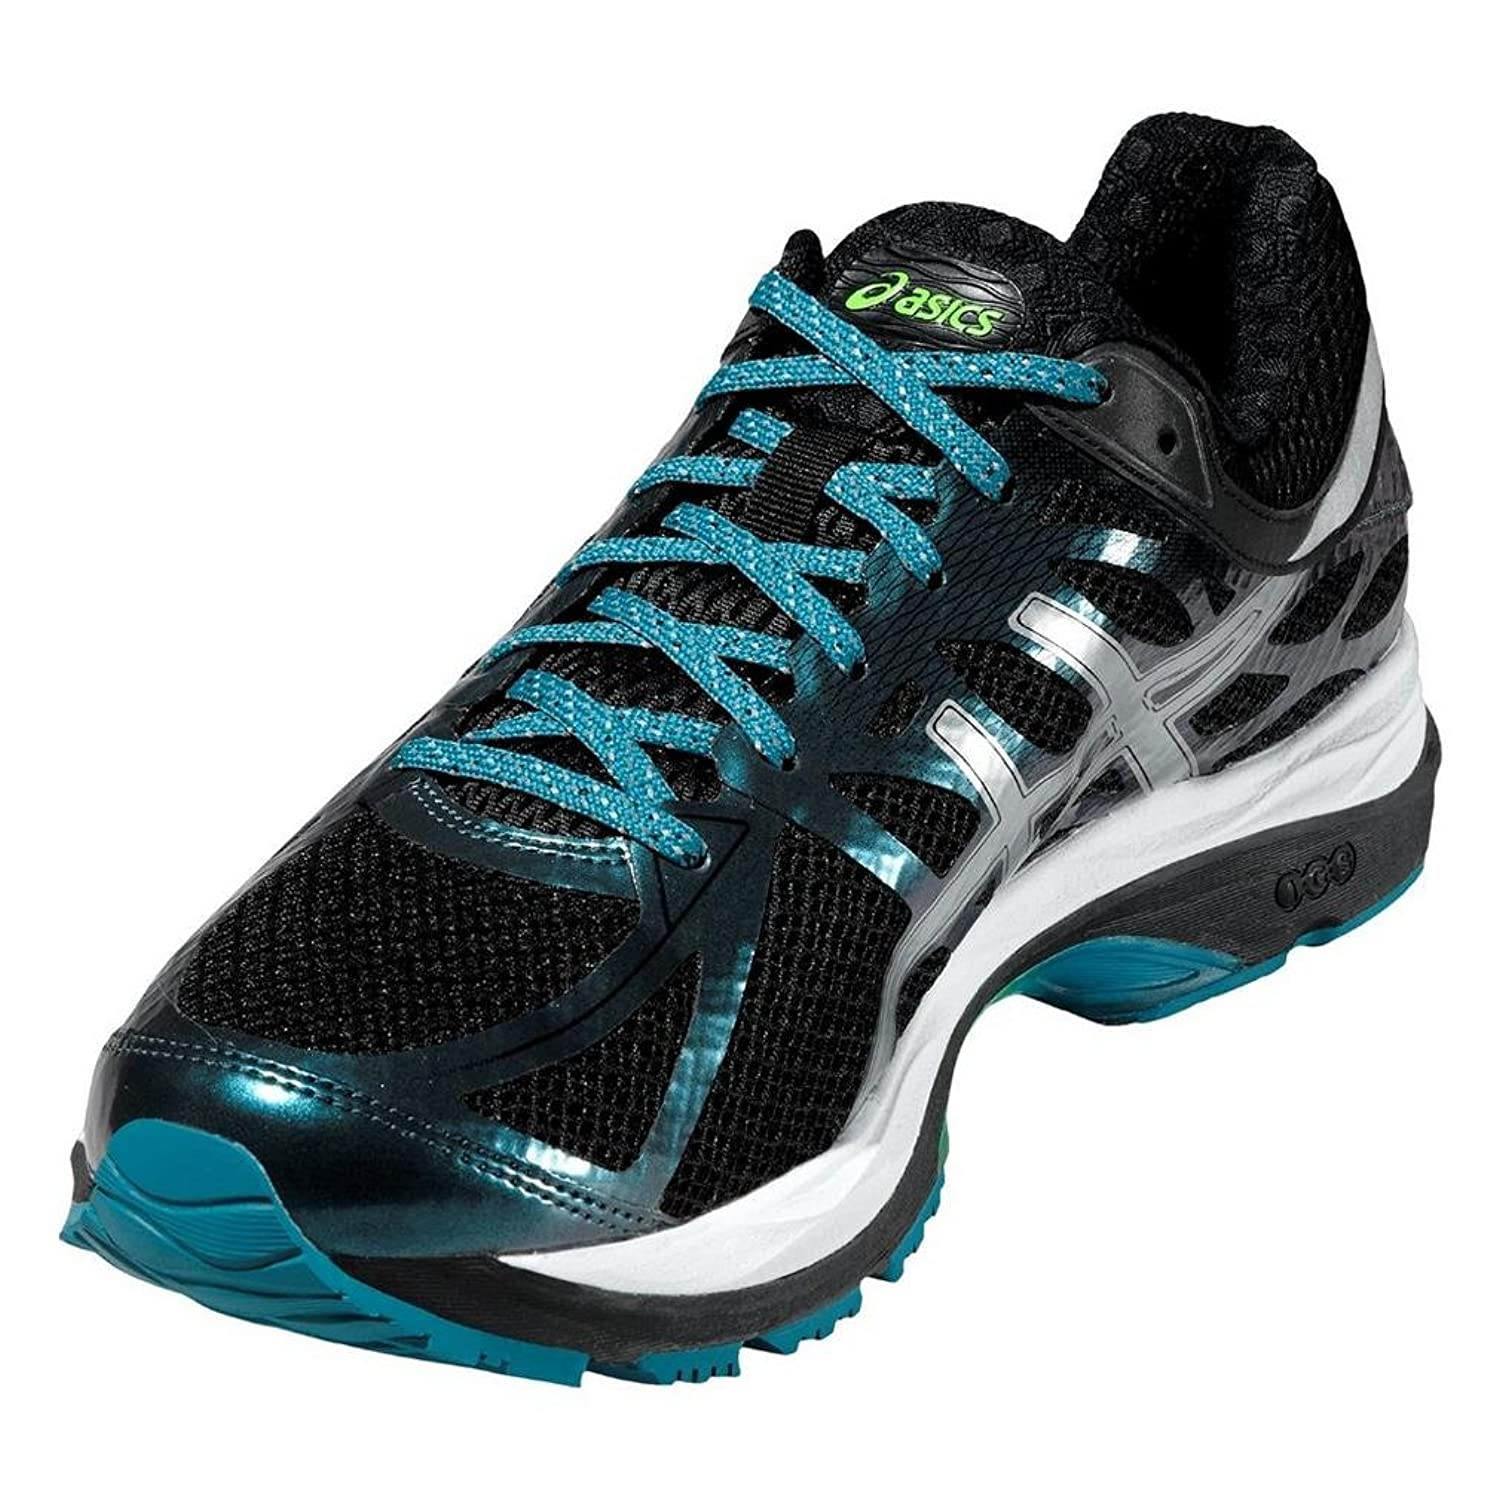 Buy Online Asics gel-cumulus 17 france Cheap  OFF59% Discounted d90f70971fee9